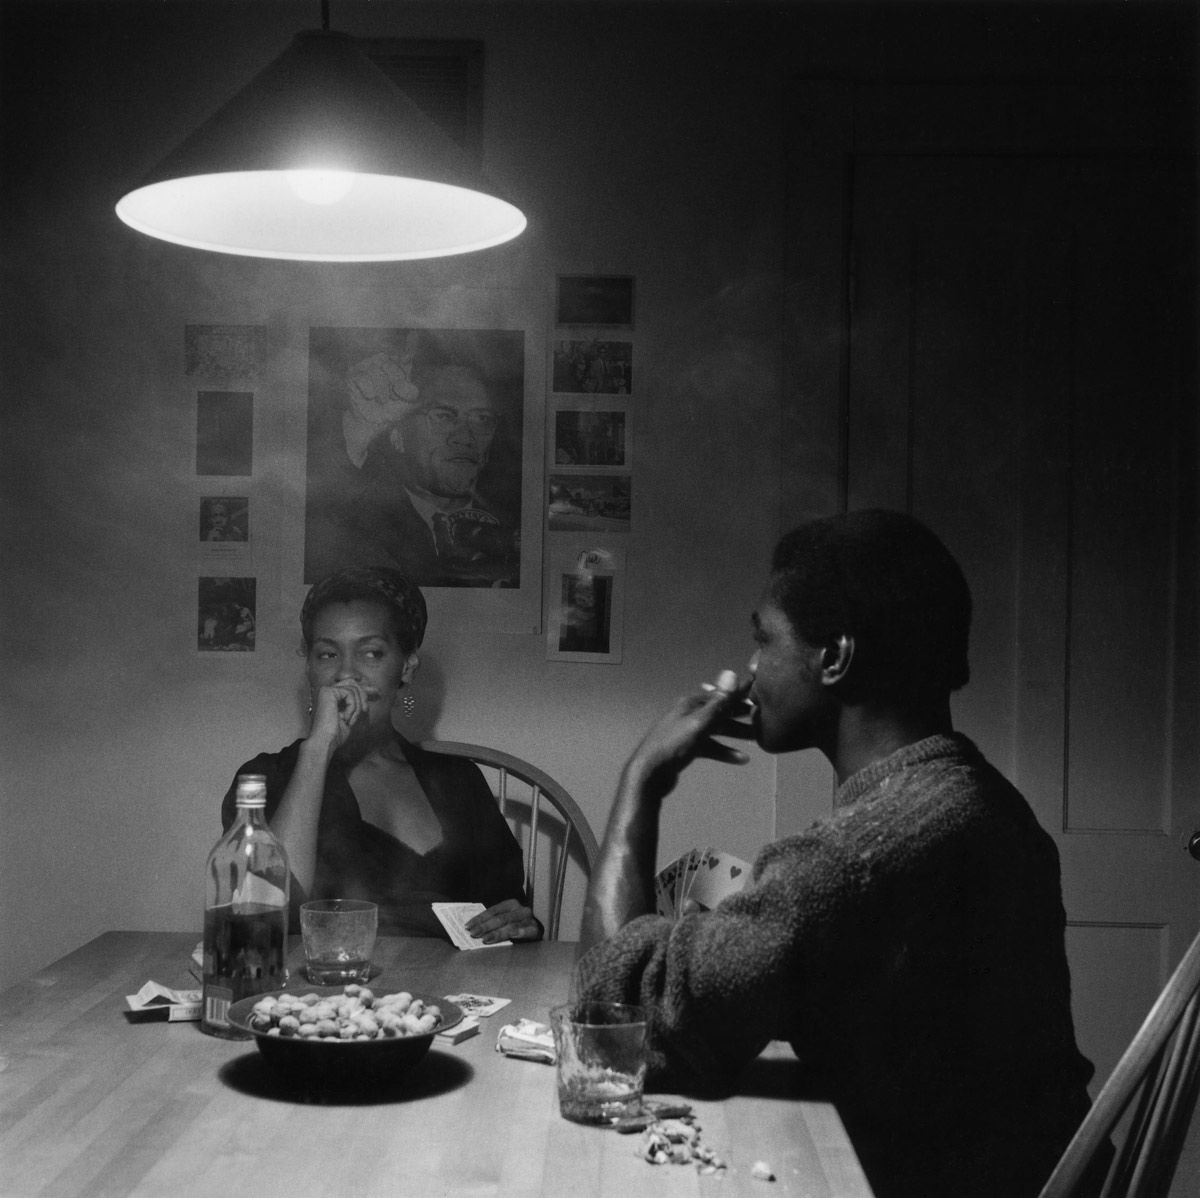 Amazing Carrie Mae Weems From The Kitchen Table Series | The Kitchen Table inside Unique Kitchen Table Series